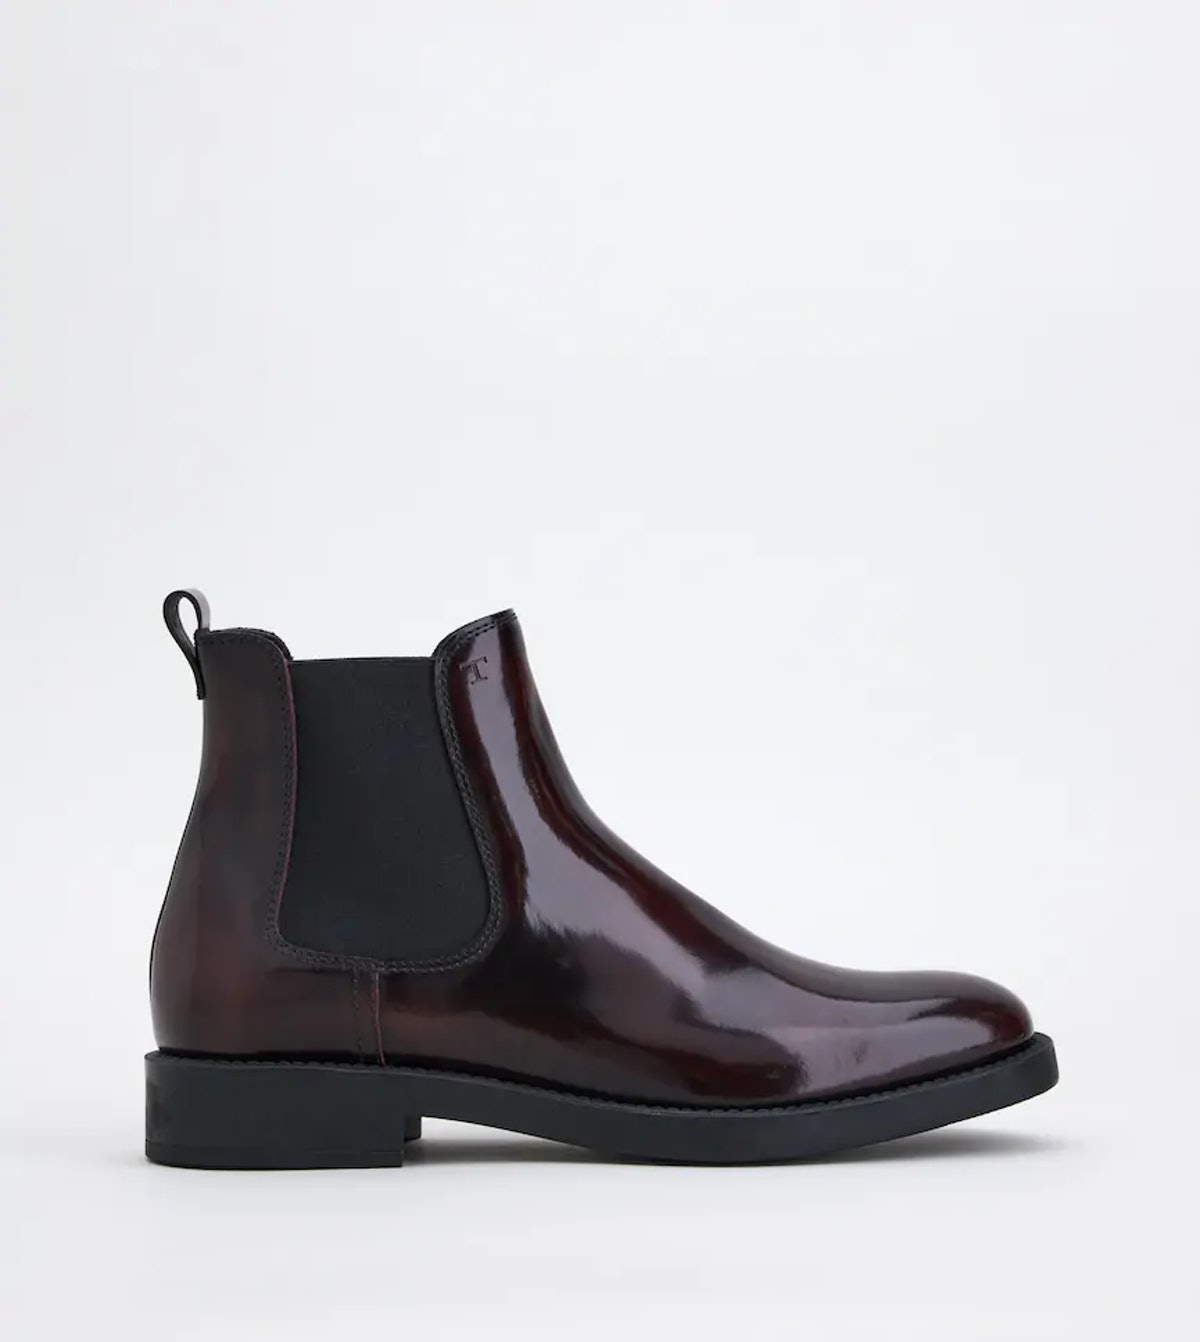 Tods Ankle Boots In Leather